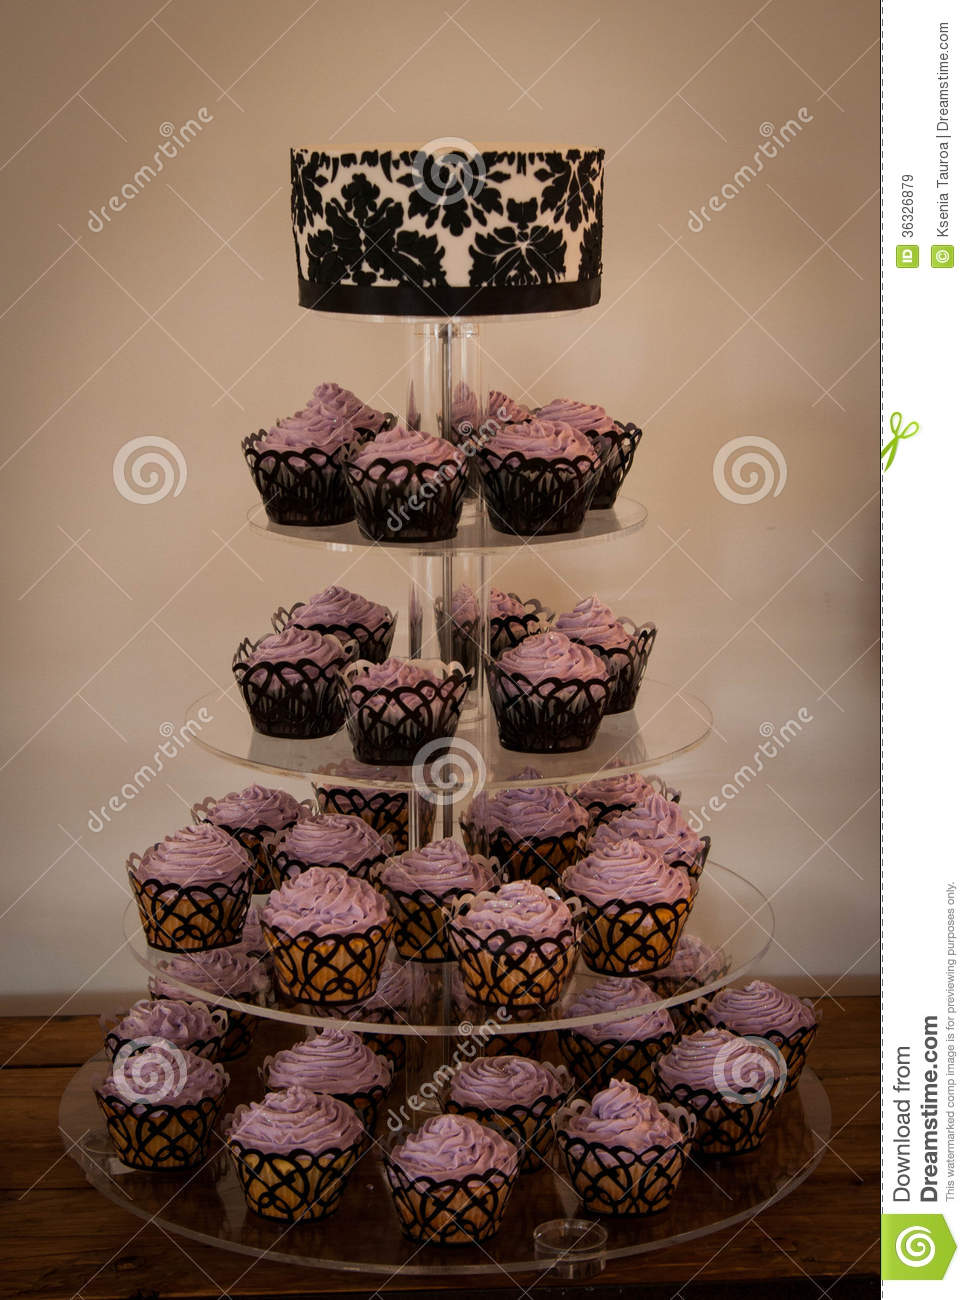 Wedding Cake Stock Image Image Of Topper Food Sugar